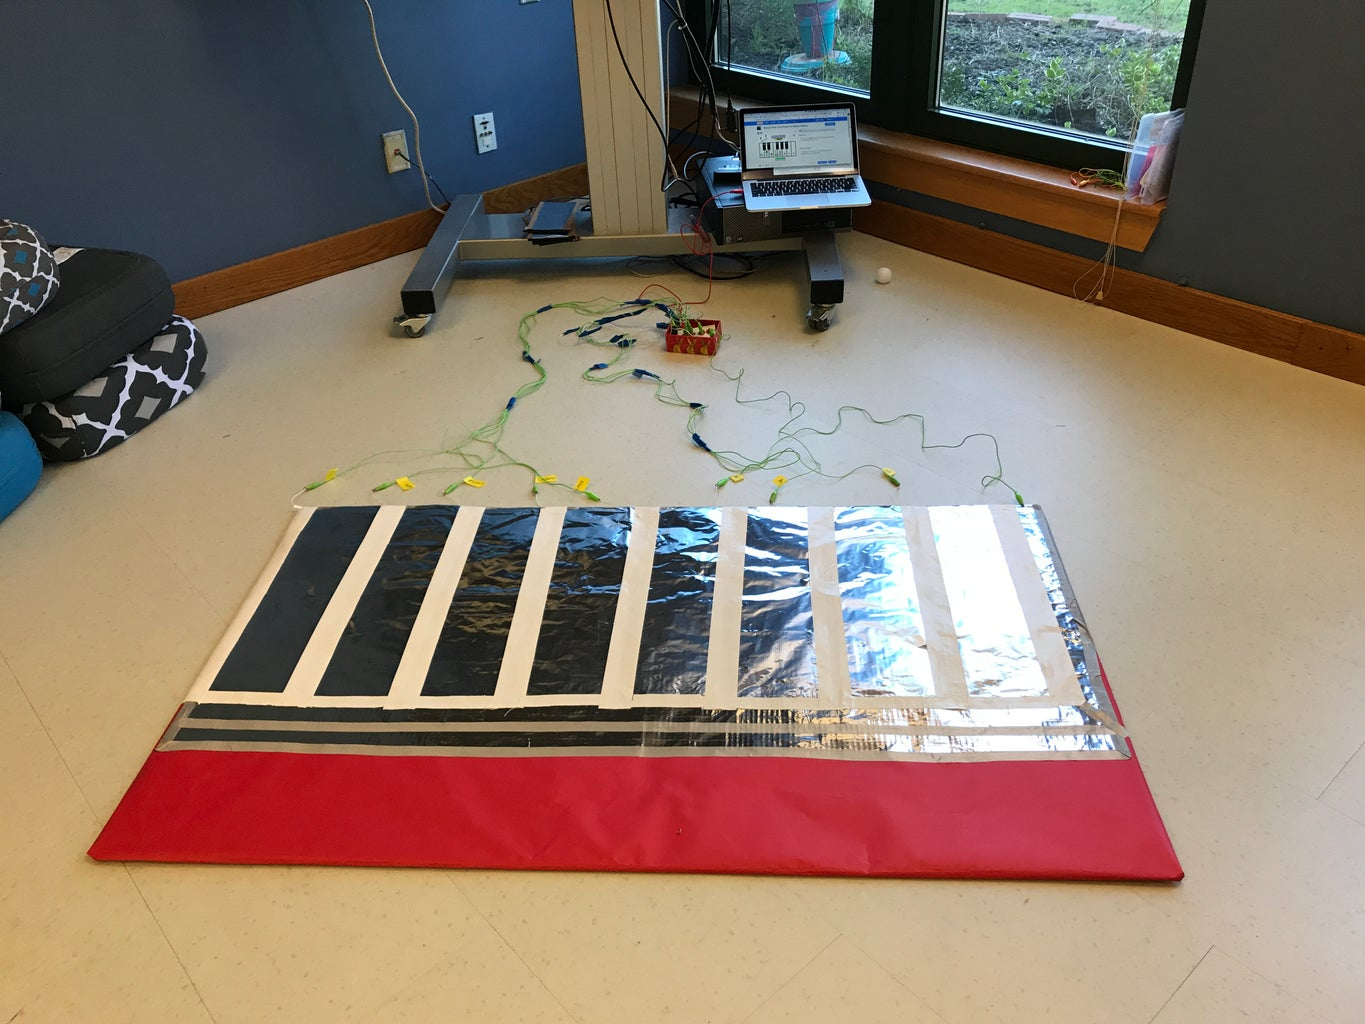 Hooking Up Makey Makey to the Full Scale Piano